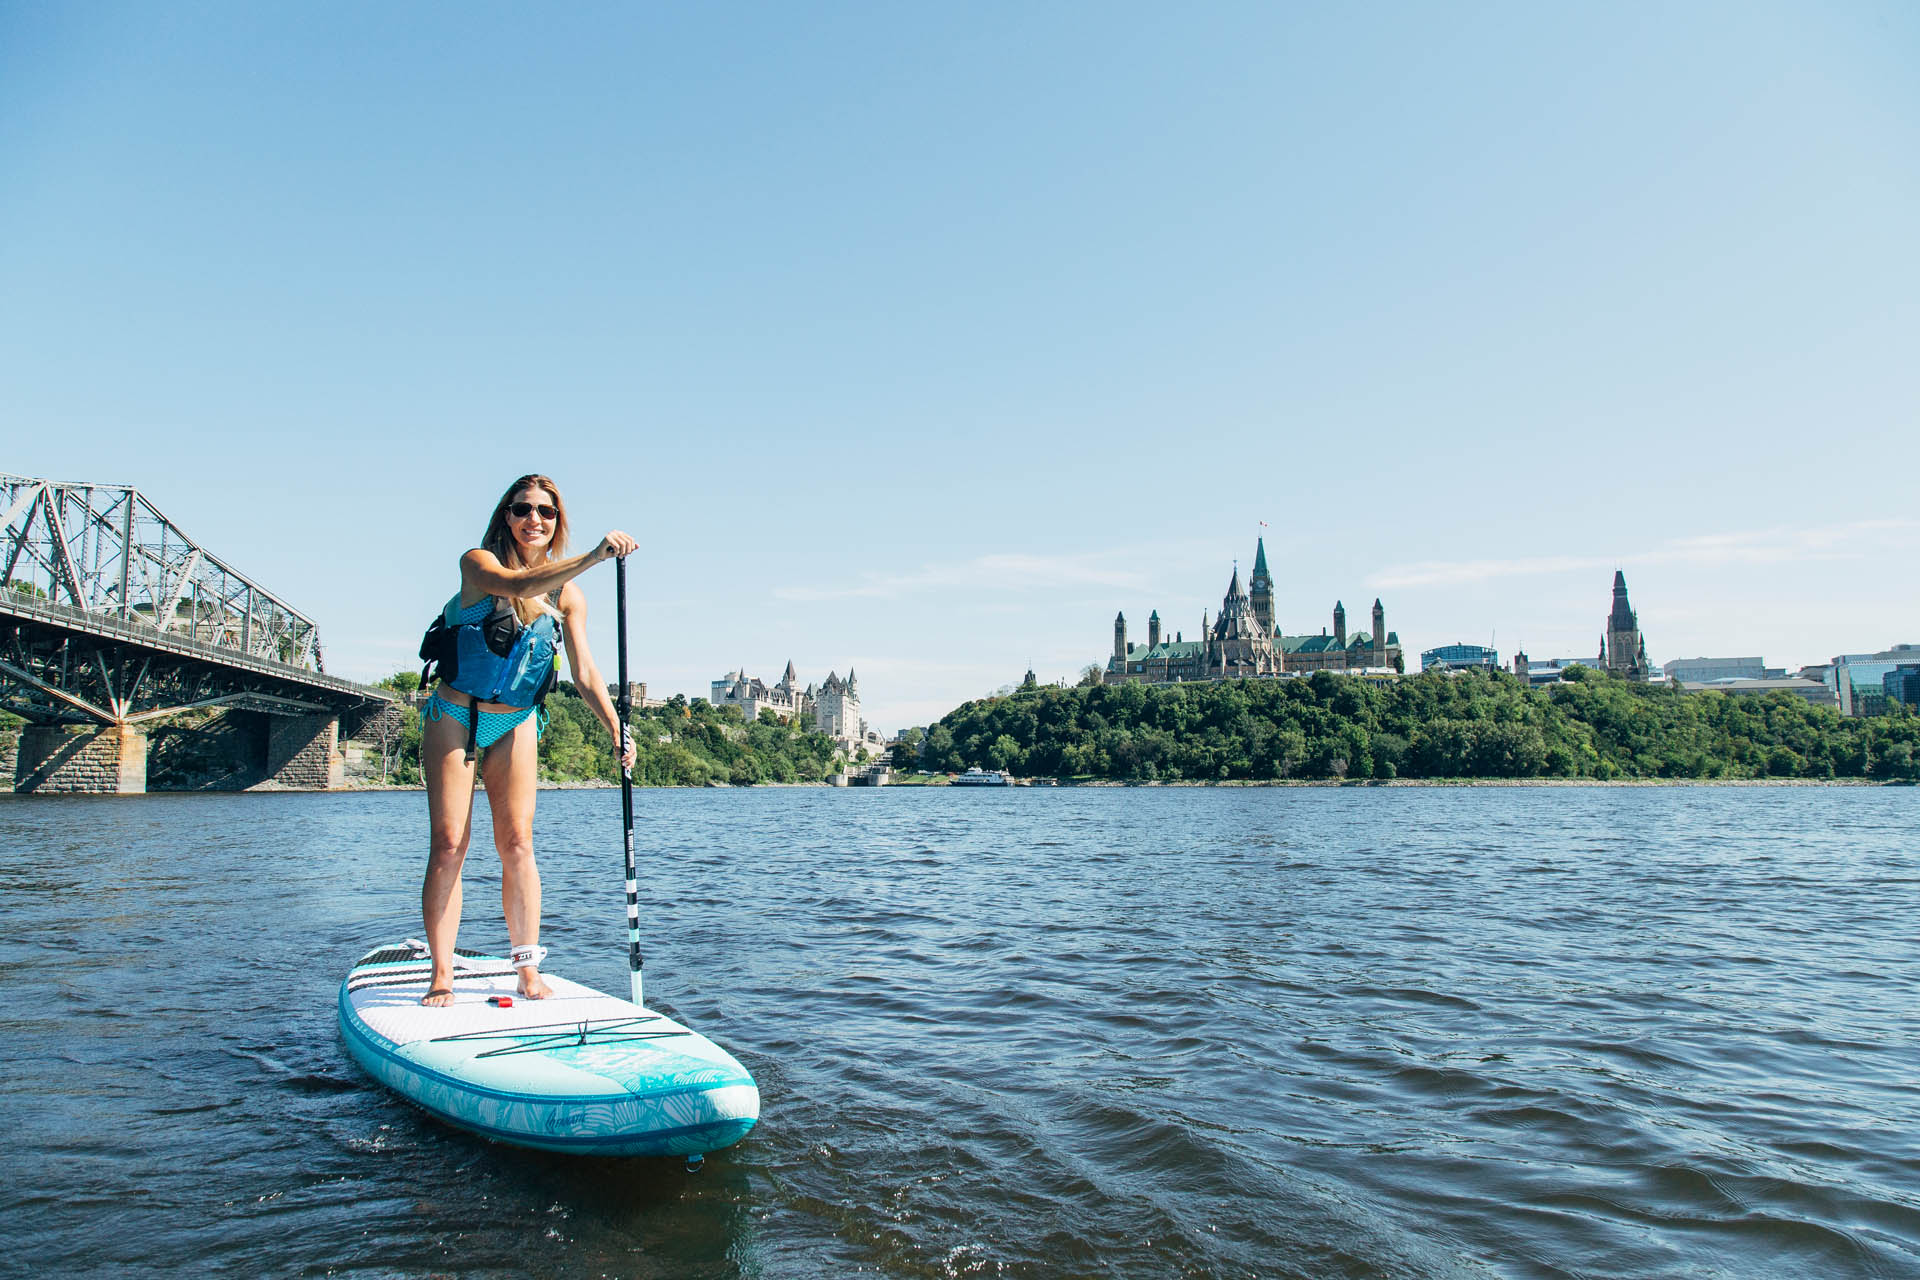 Woman on a stand up paddle board on the Ottawa River in front of Canada's Parliamant